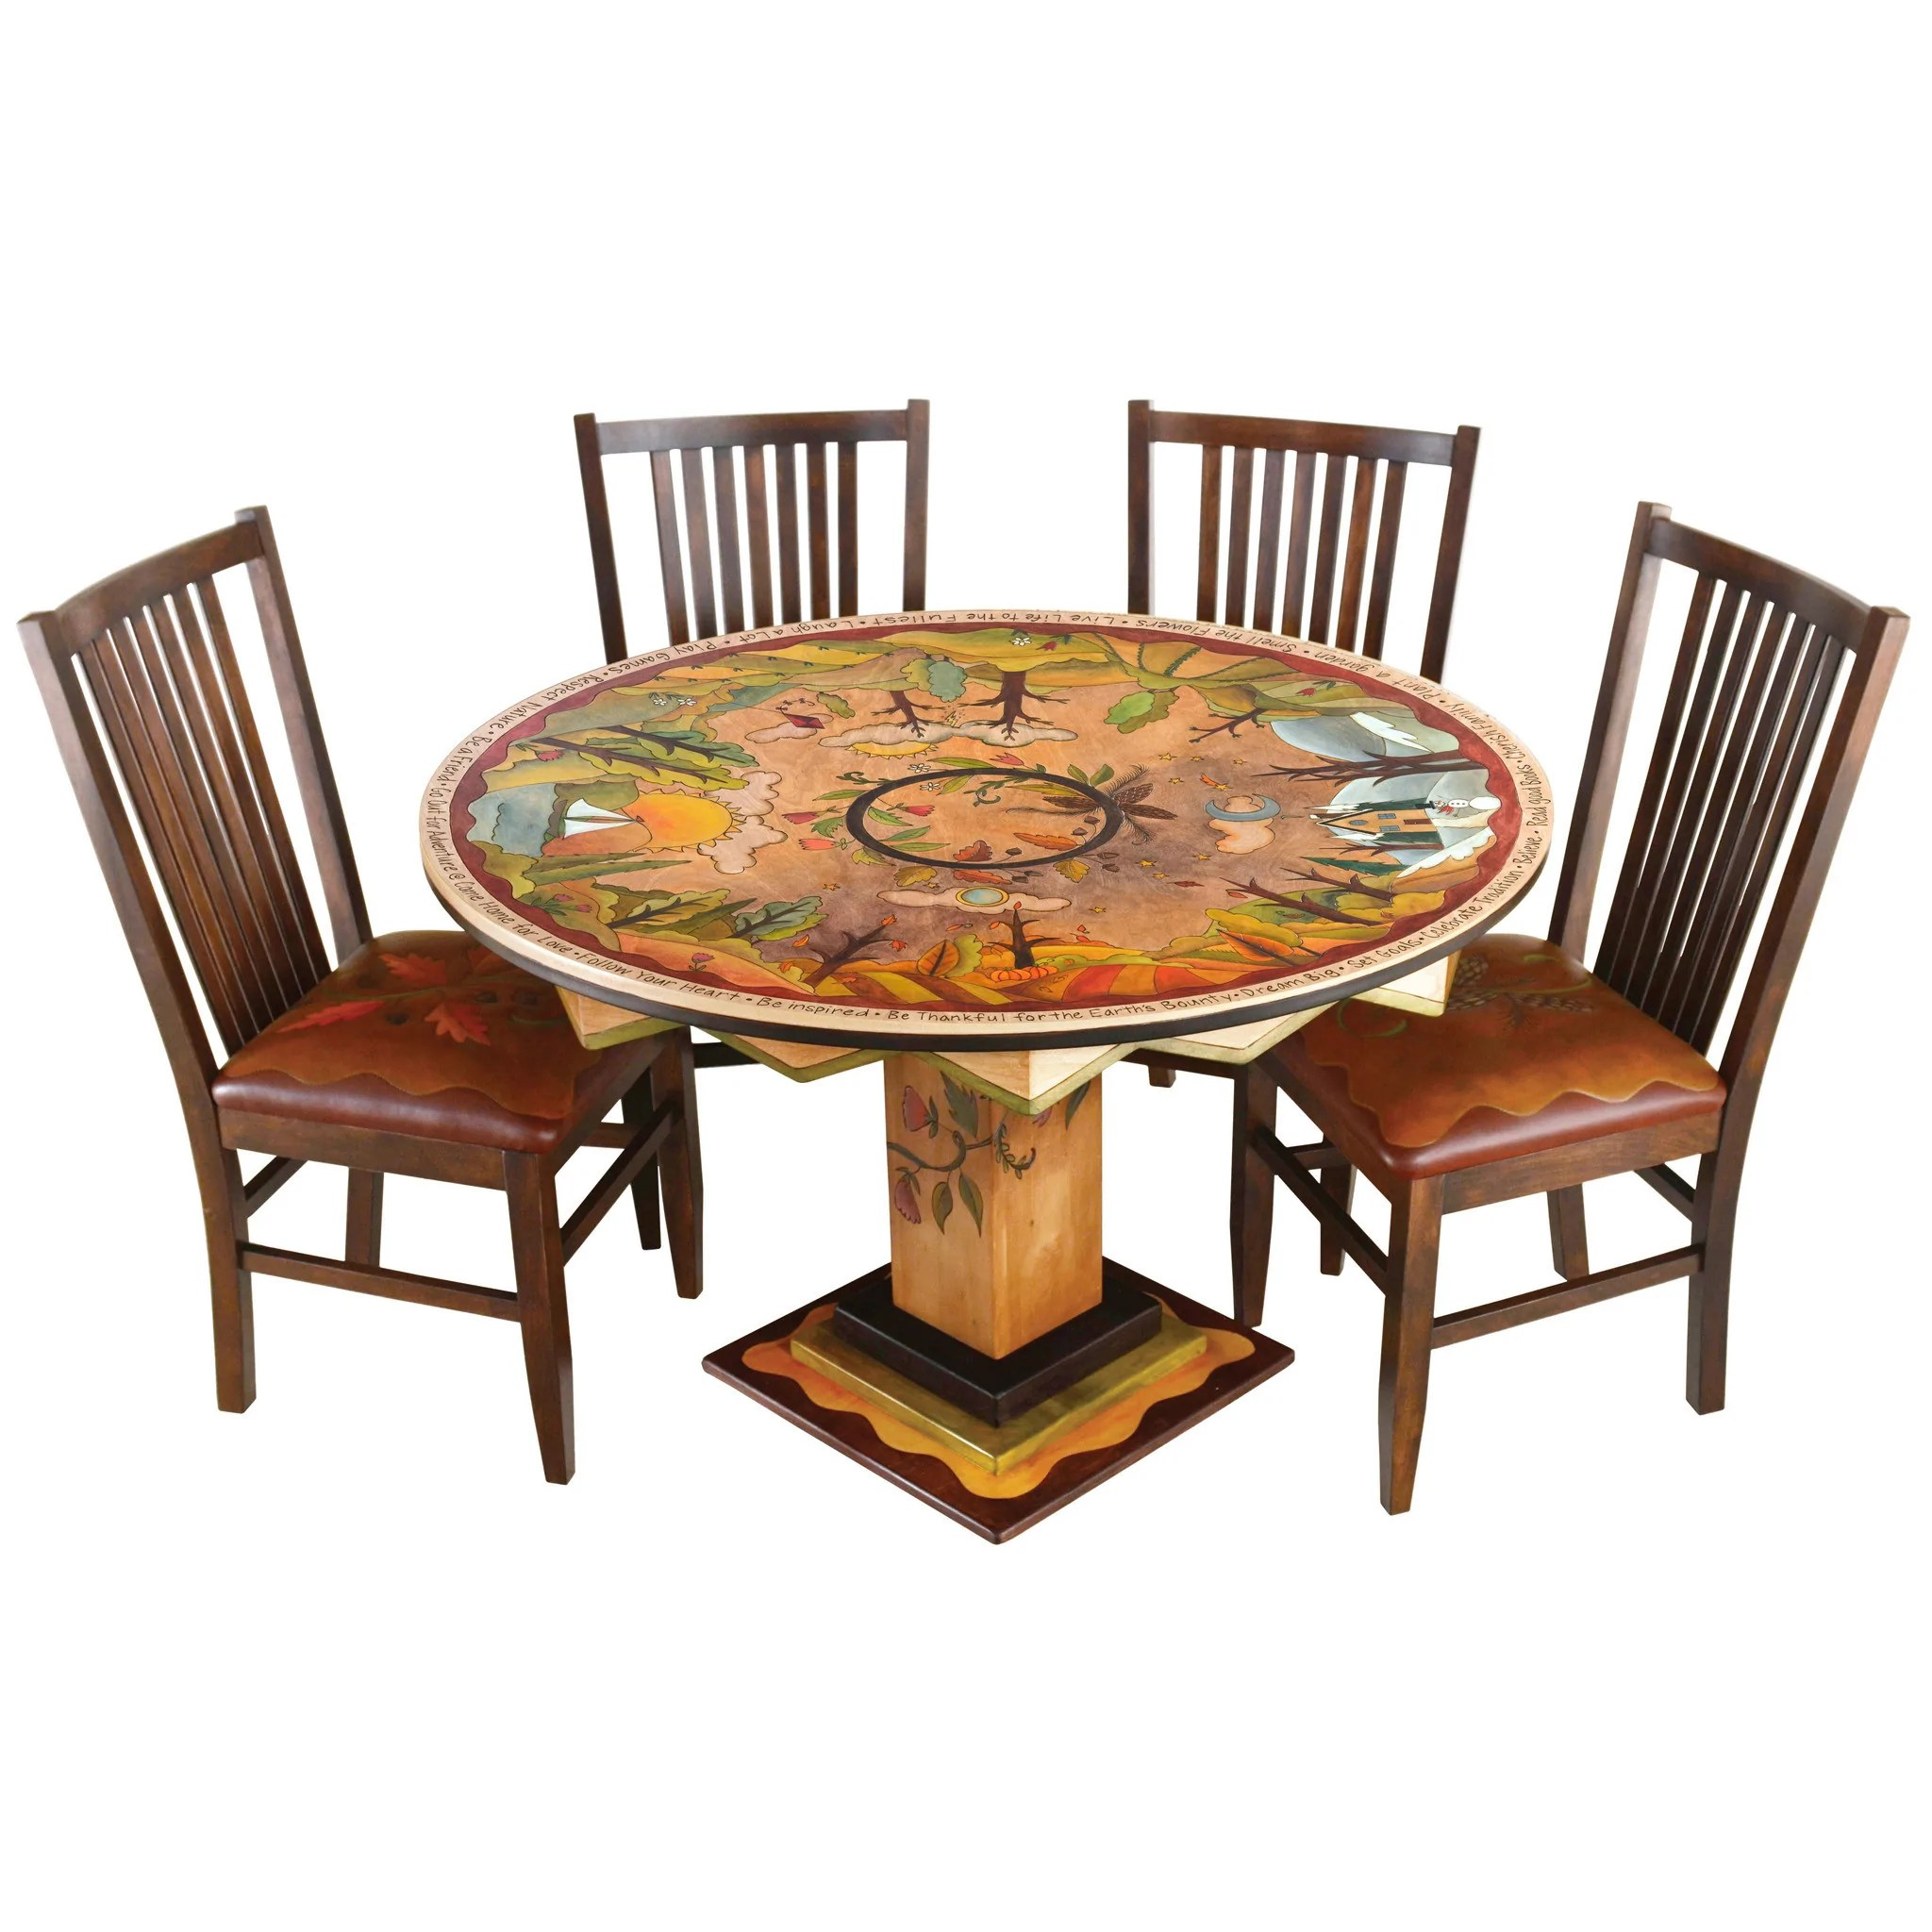 Dining Table Designs Round Dining Table By Sticks Din D73626